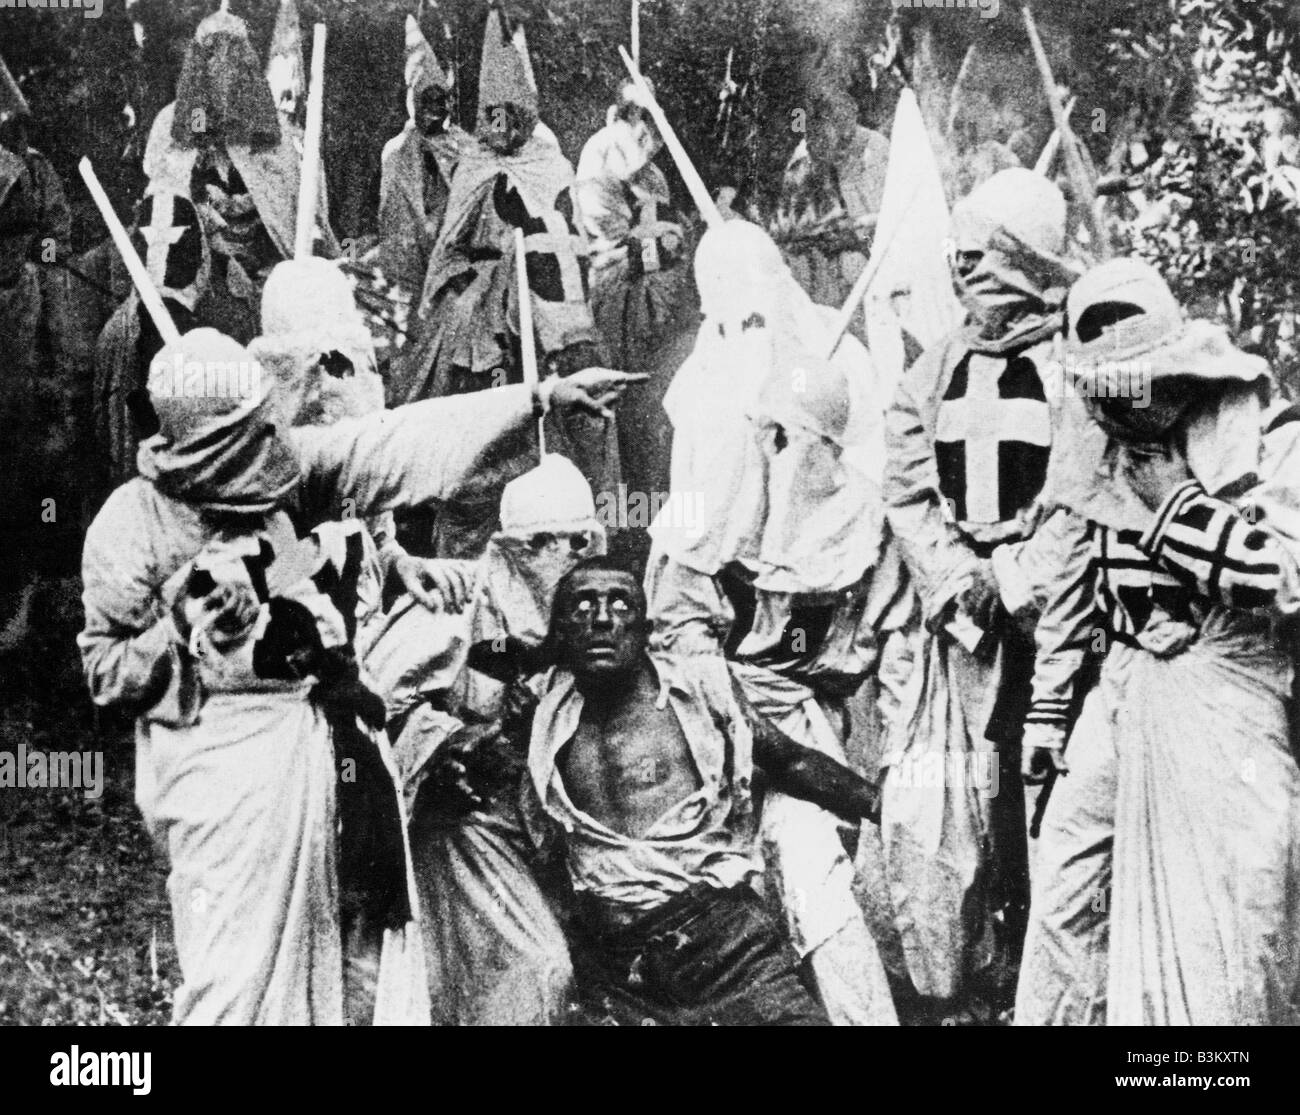 a movie analysis of birth of a nation by d w griffith Find trailers, reviews, synopsis, awards and cast information for the birth of a nation (1915) - dw griffith on allmovie - the most successful and artistically advanced.